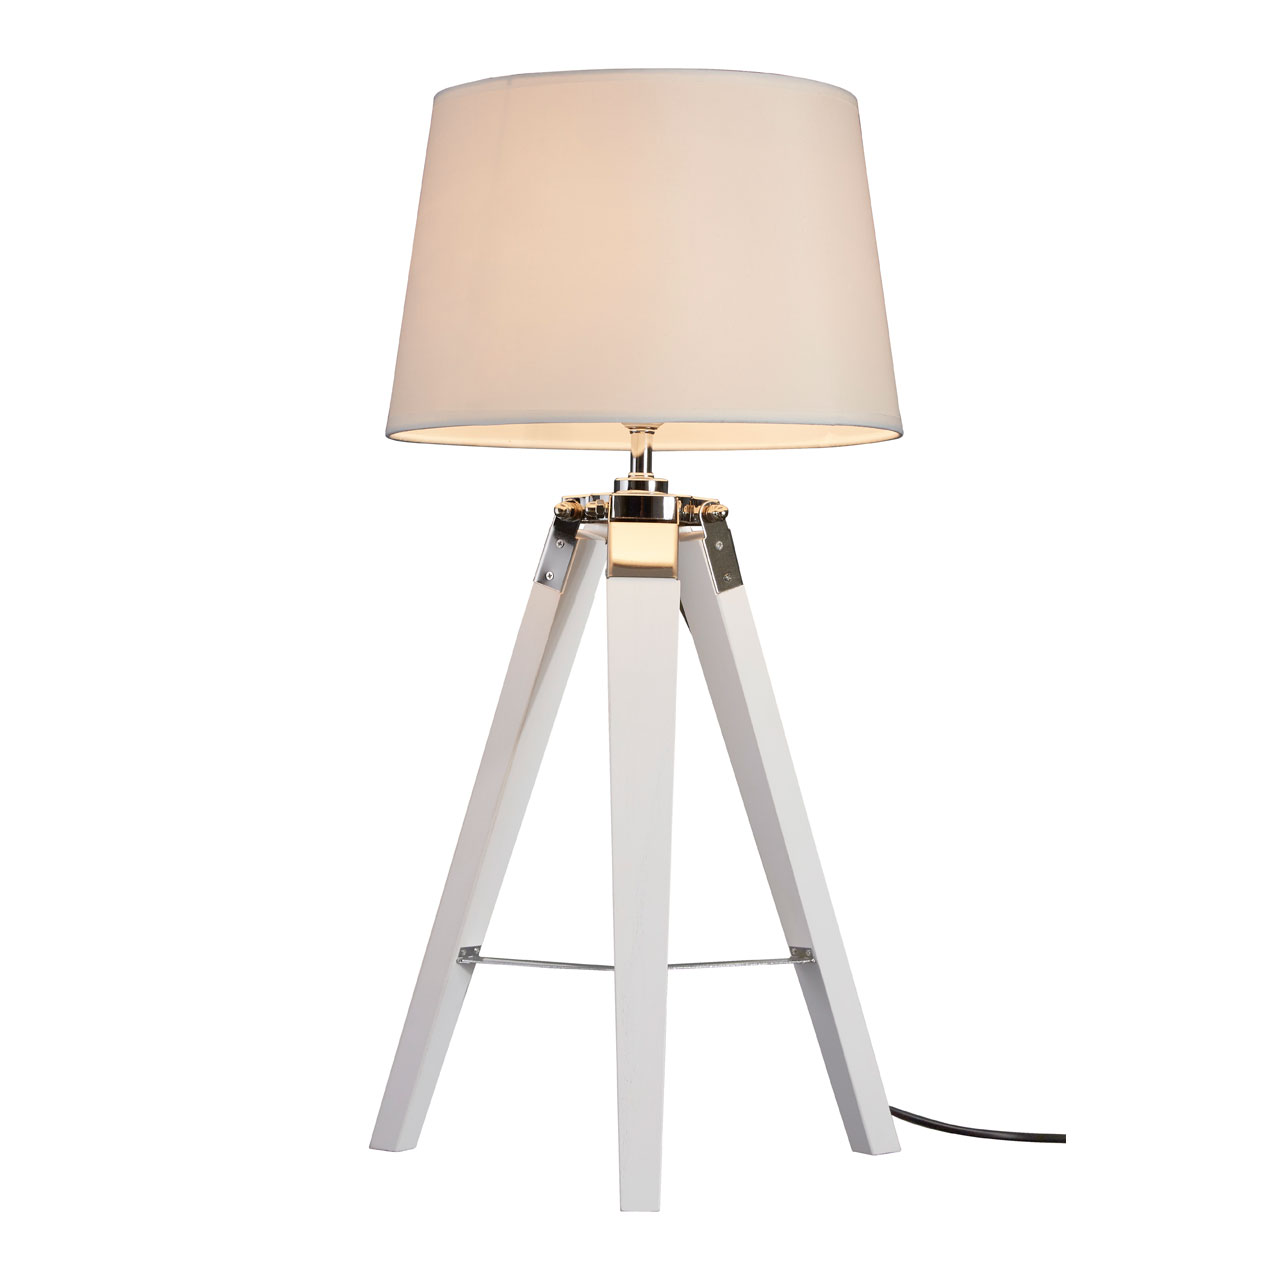 Bailey Table Lamp White Tripod Wooden Base Bedside Light Scandinavian Style